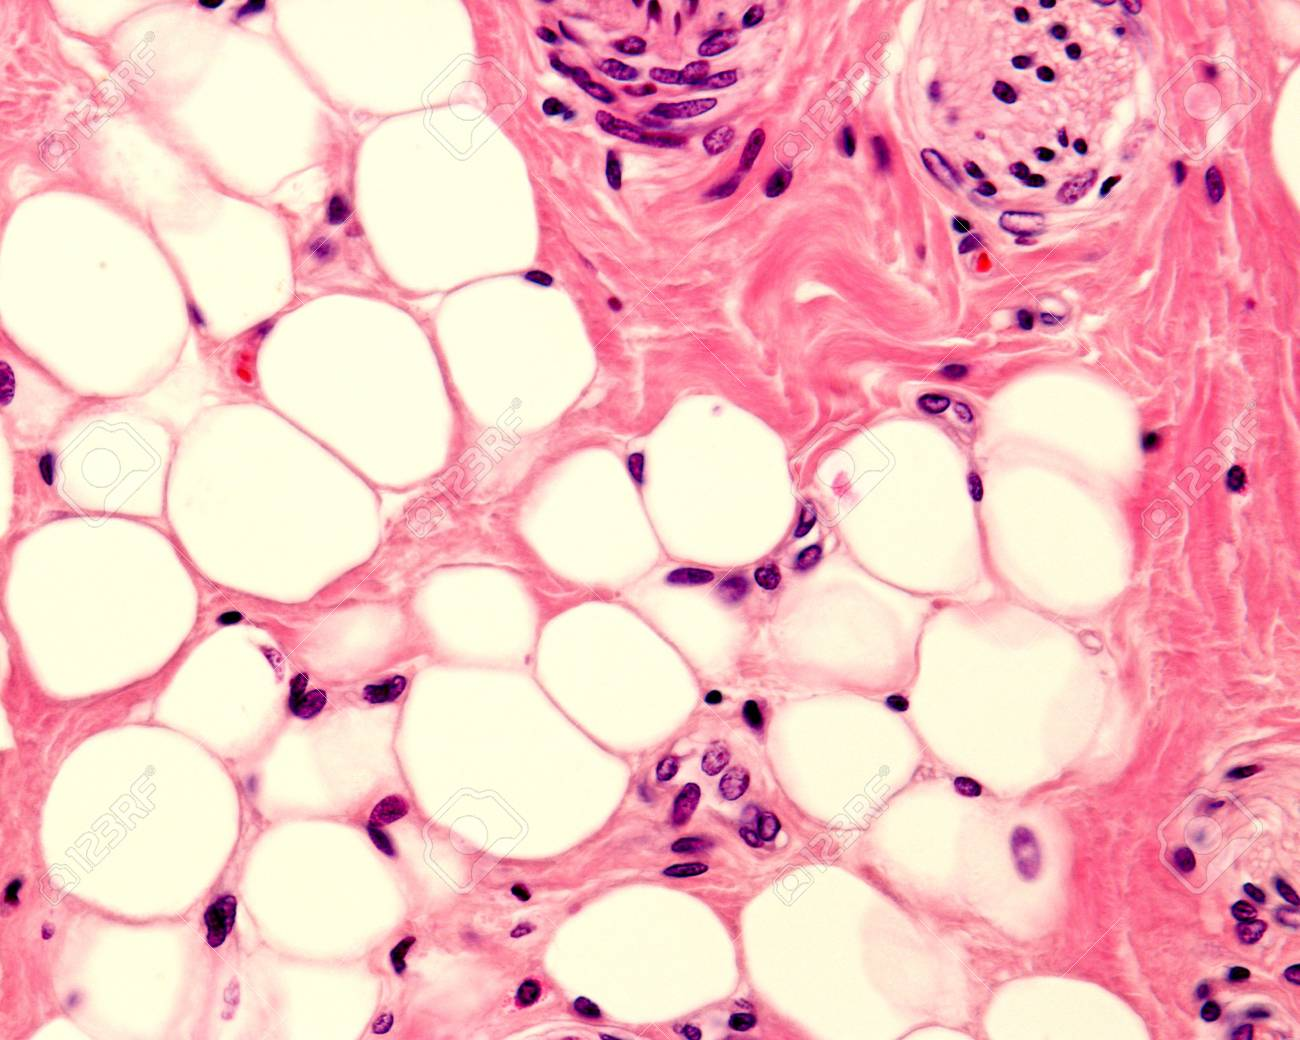 Small adipocyte lobule located in a connective tissue. A small nerve is located in the upper right corner. Light micrograph. H&E stain. - 97131173